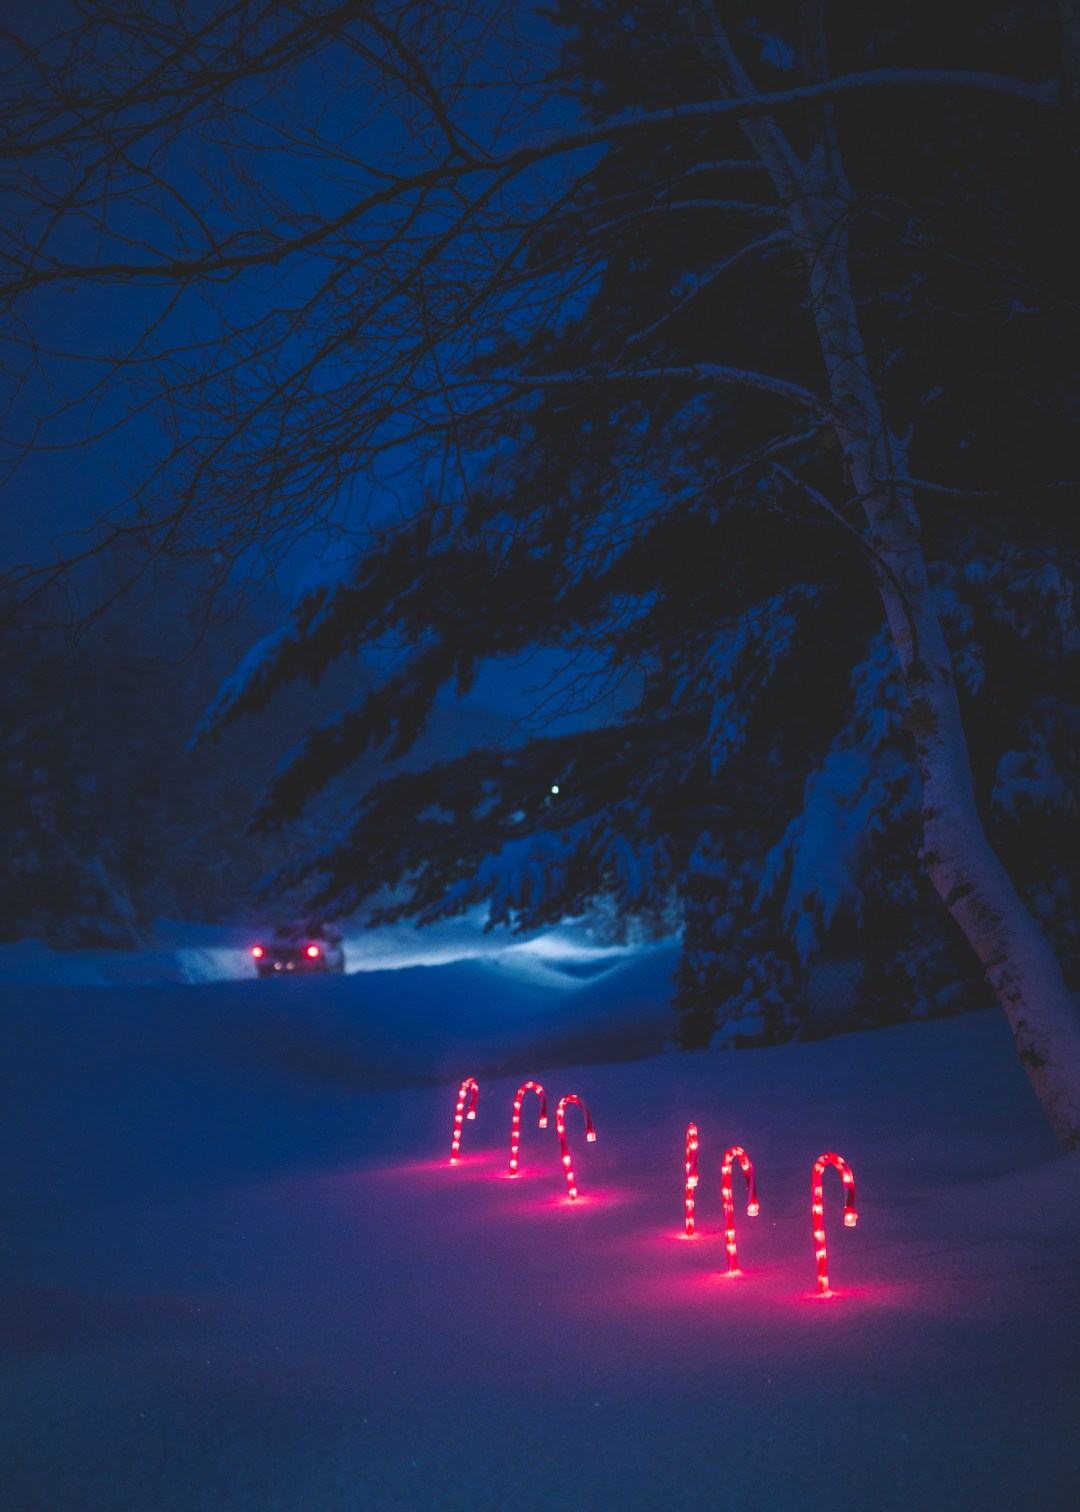 Hd Wallpapers Car And Girl Night Snow Winter And Candy Cane Hd Photo By Filip Mroz